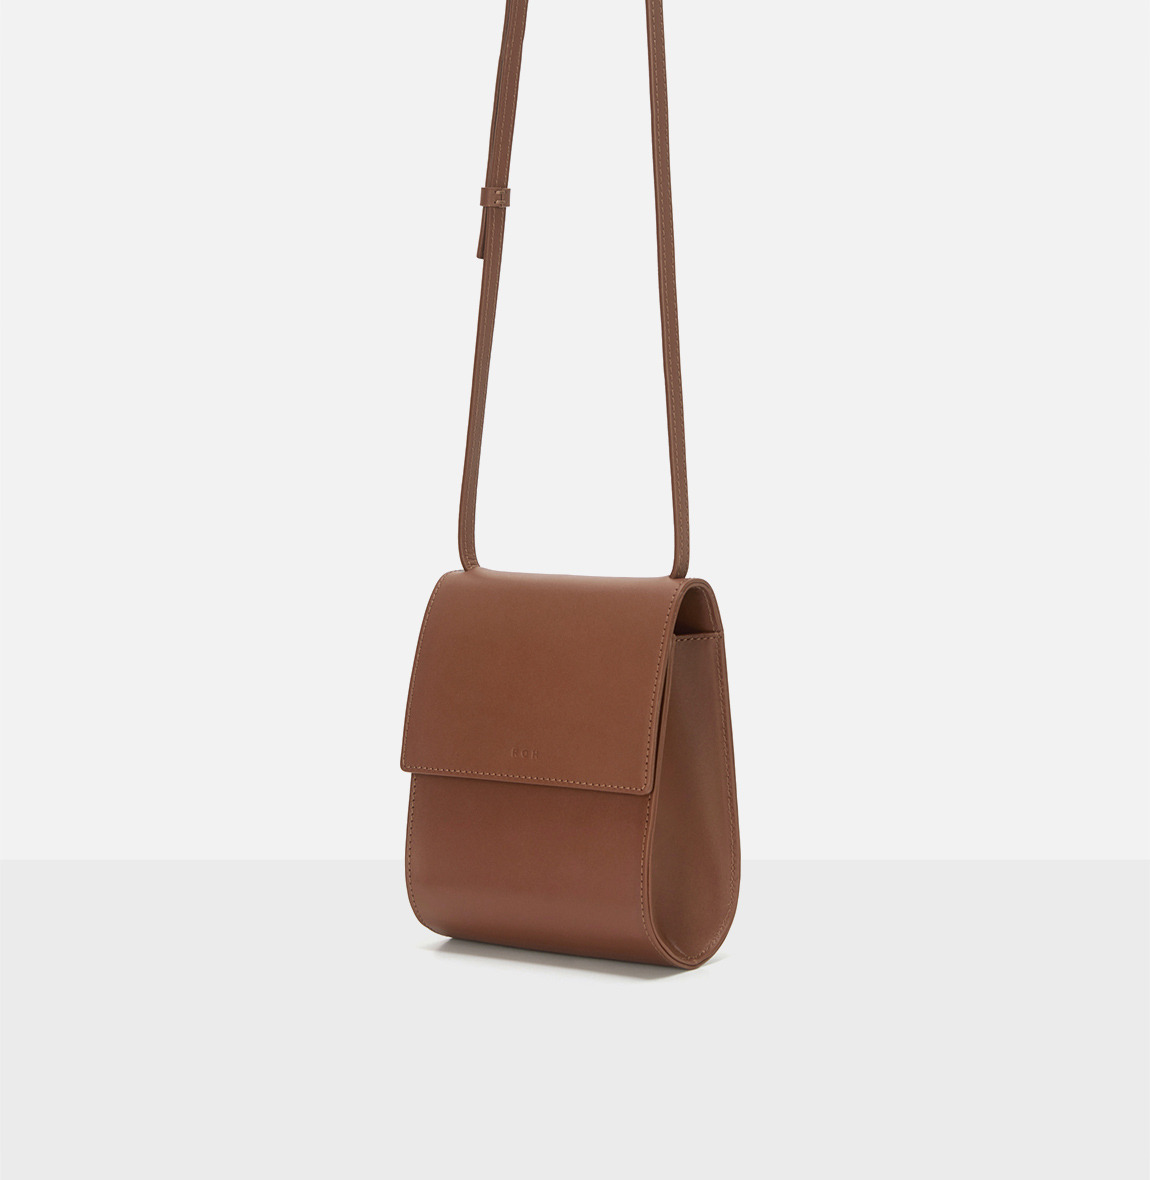 Pochette crossbody bag Smoky Tan